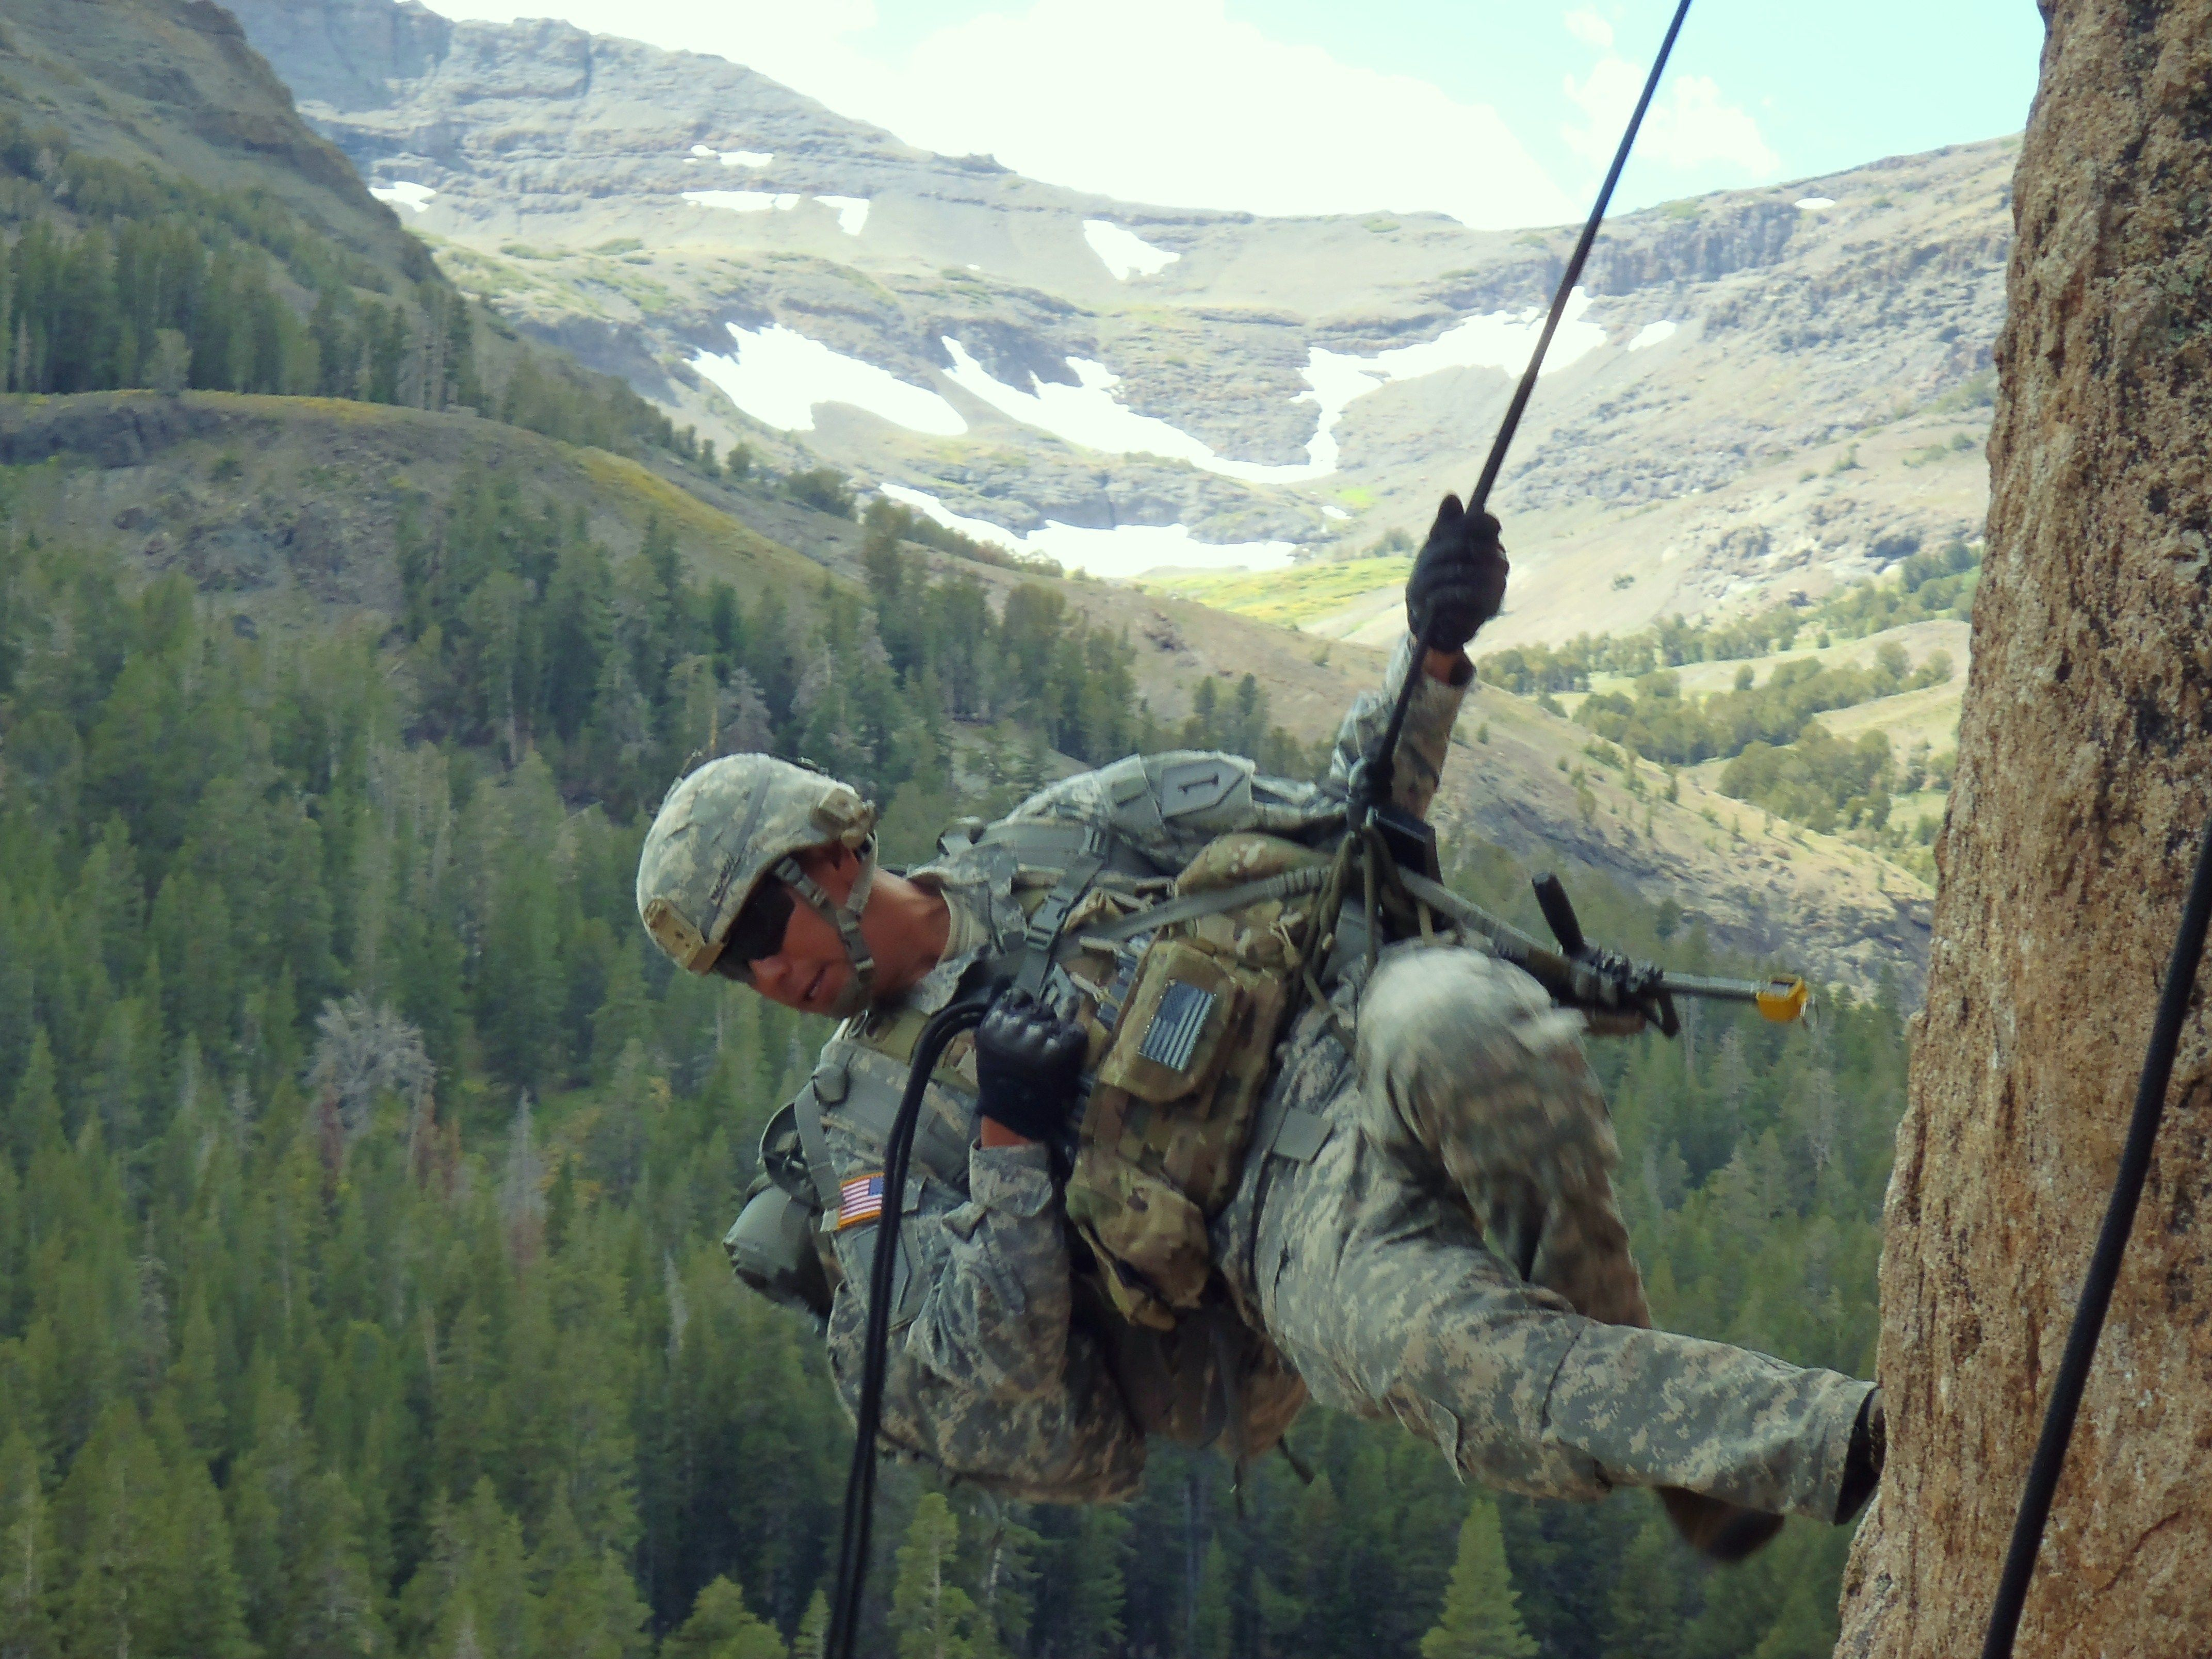 Cpl. Jose Pacheco, Headquarters and Headquarters Platoon, Company D, 1st Battalion, 28th Infantry Regiment, 4th Infantry Brigade Combat Team, 1st Infantry Division, practices rappelling techniques during the basic-mobility portion of Mountain Exercise 08-11 at the Marine Corps' Mountain Warfare Training Center in Northern California's Toiyabe National Forest, Sept. 22. Pacheco and his fellow Soldiers will use the technical skills they learn during basic-mobility to gain a tactical advantage